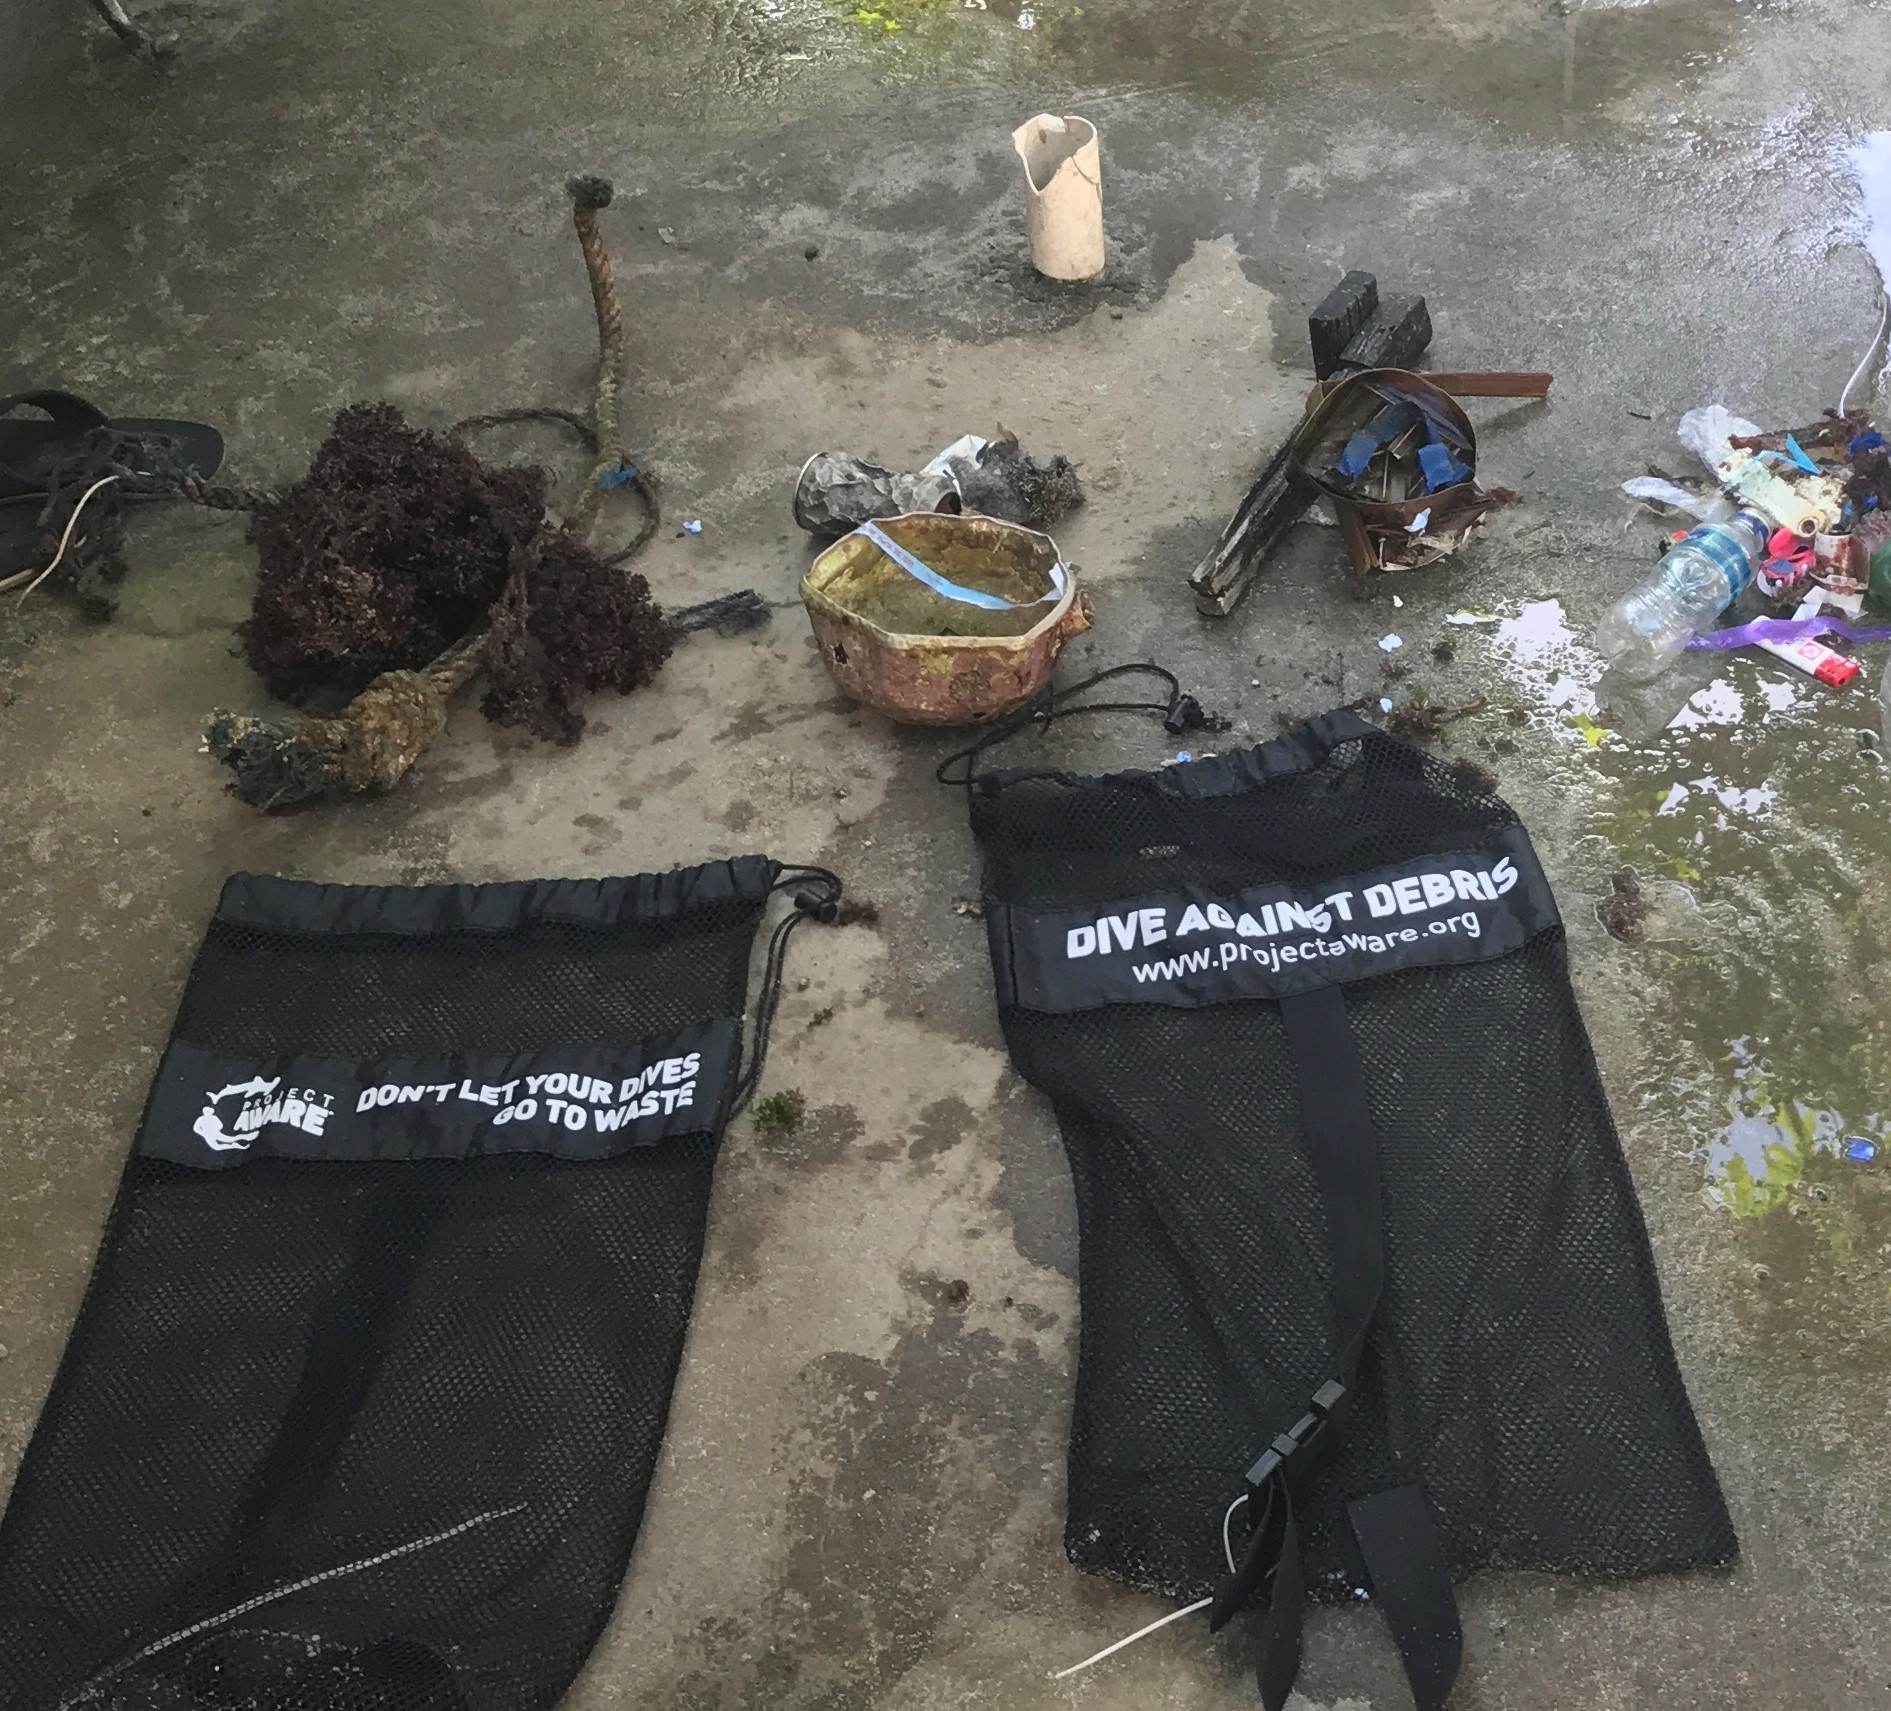 Humans are the biggest contributing factor to the destruction of our oceans. Divers can help by picking up trash